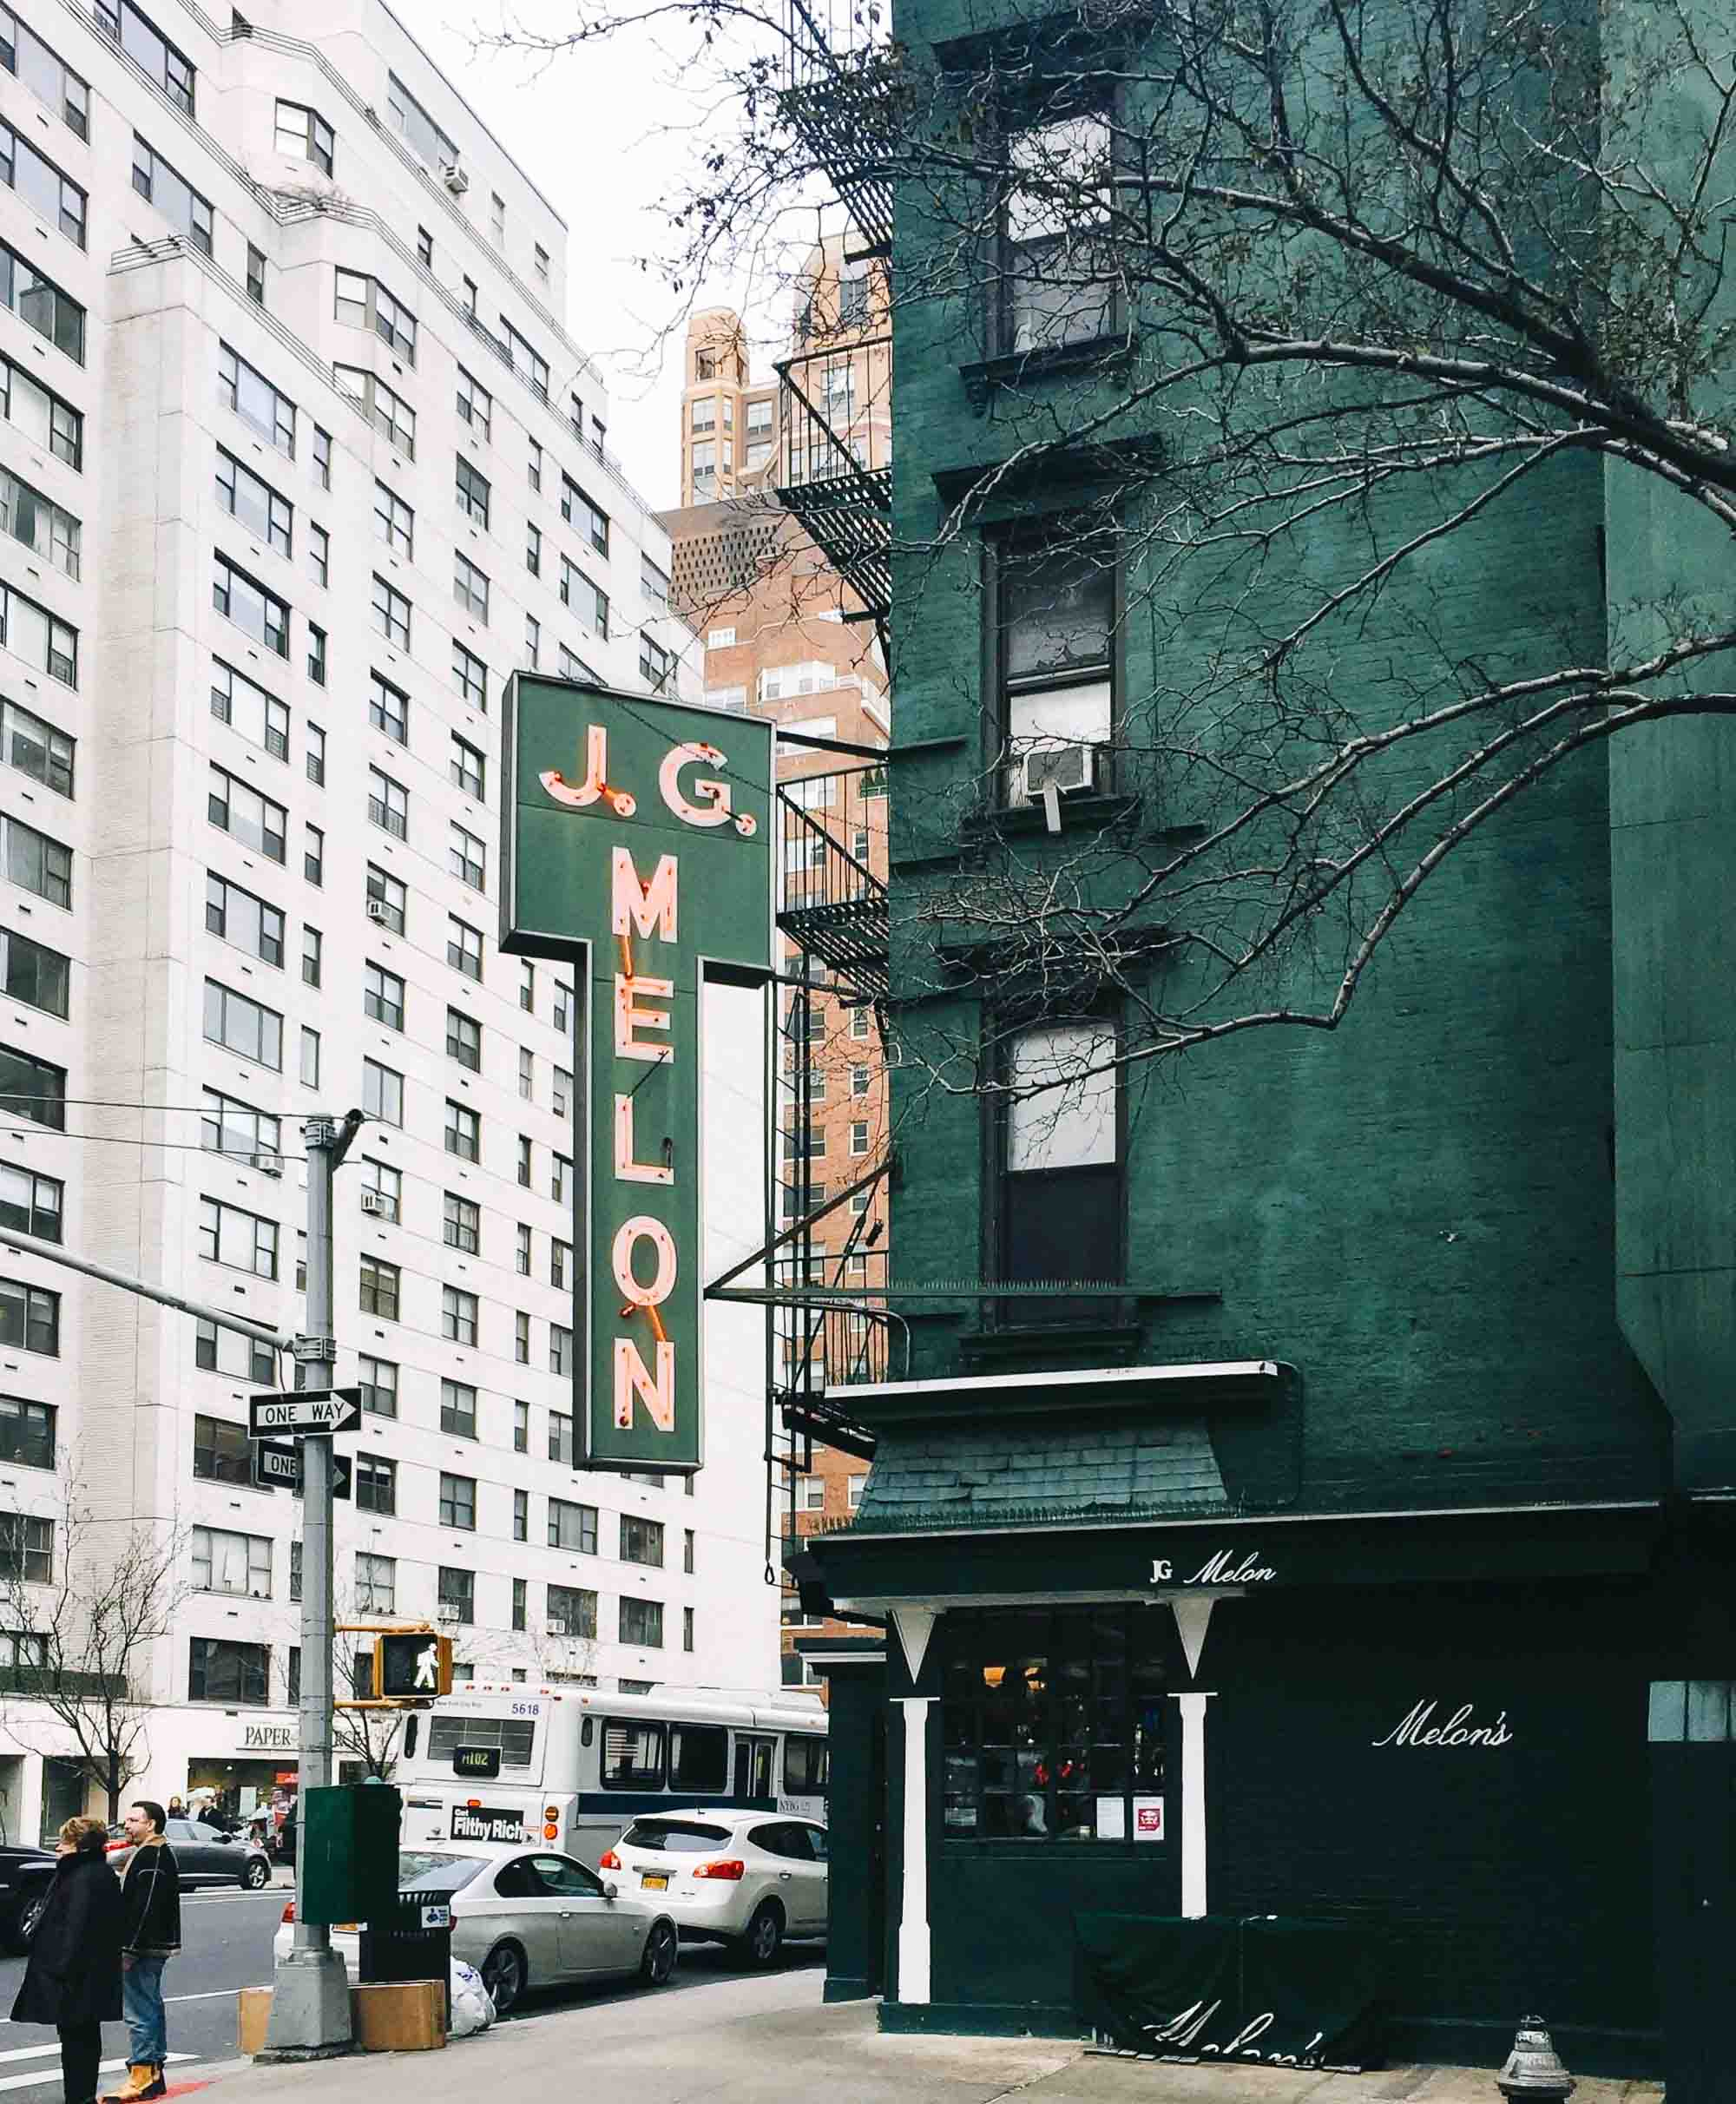 Things to Do in Upper East Side New York City featured by top New York City blog, York Avenue: image of JG Melon Upper East Side restaurants